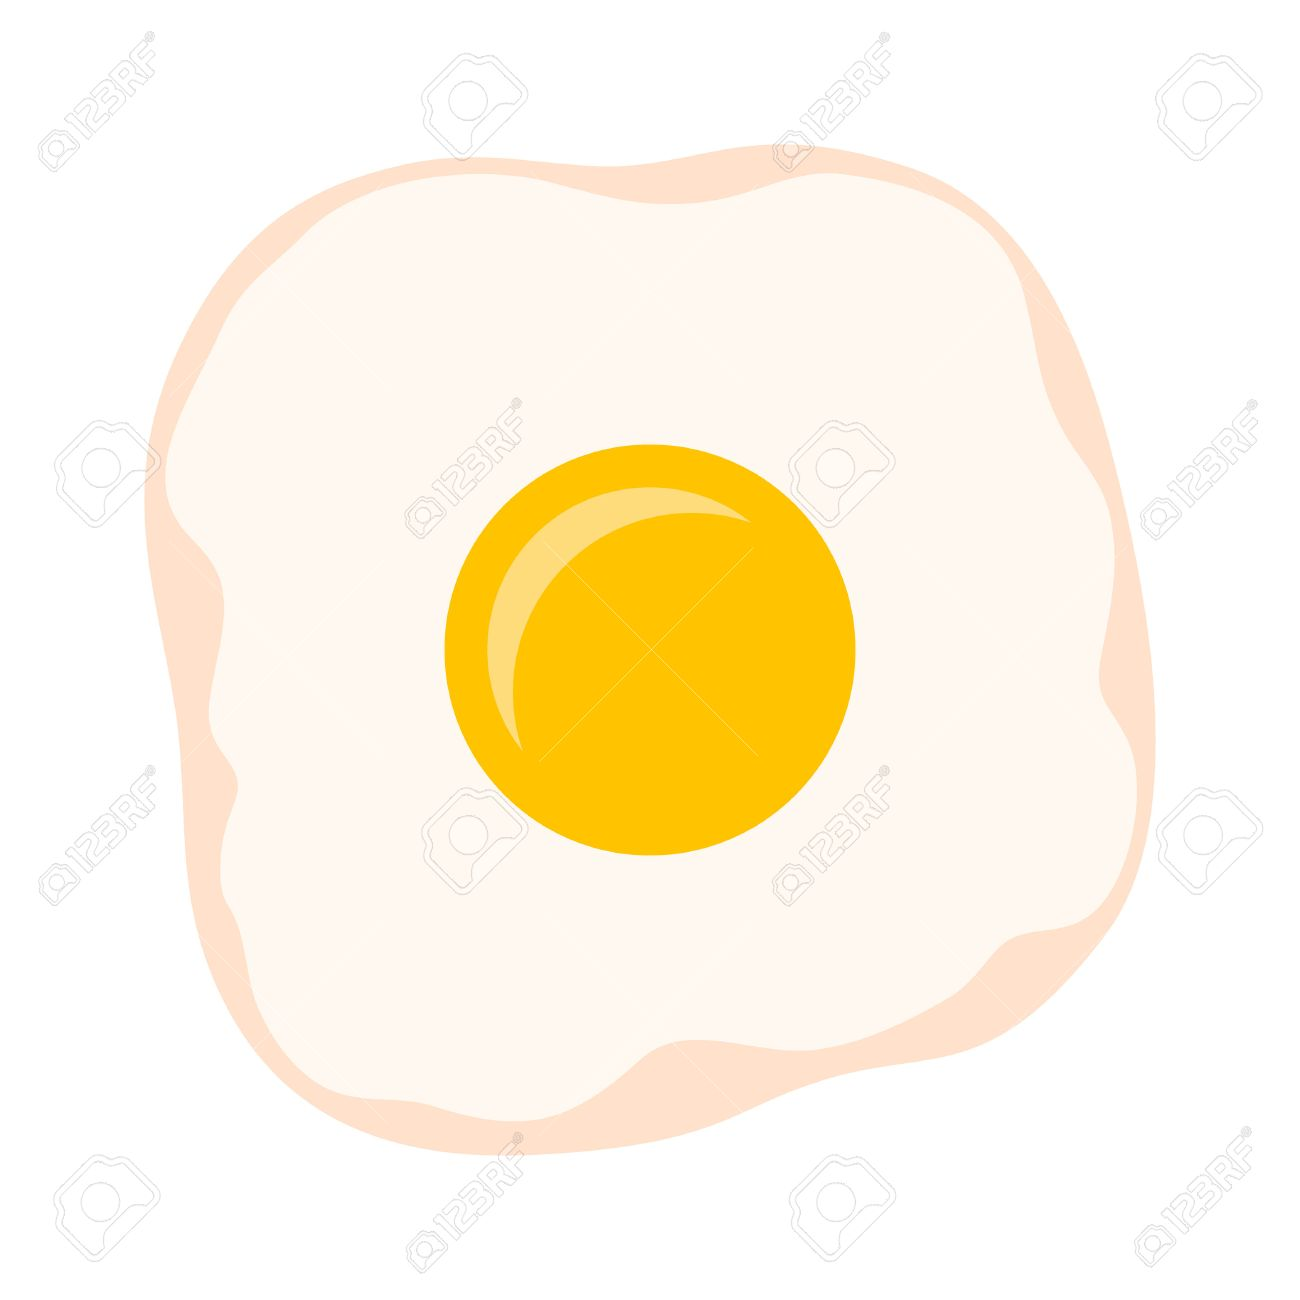 Cooked Fried Egg With Yolk And Egg White Flat Color Vector Icon ... for Clipart Yolk  104xkb